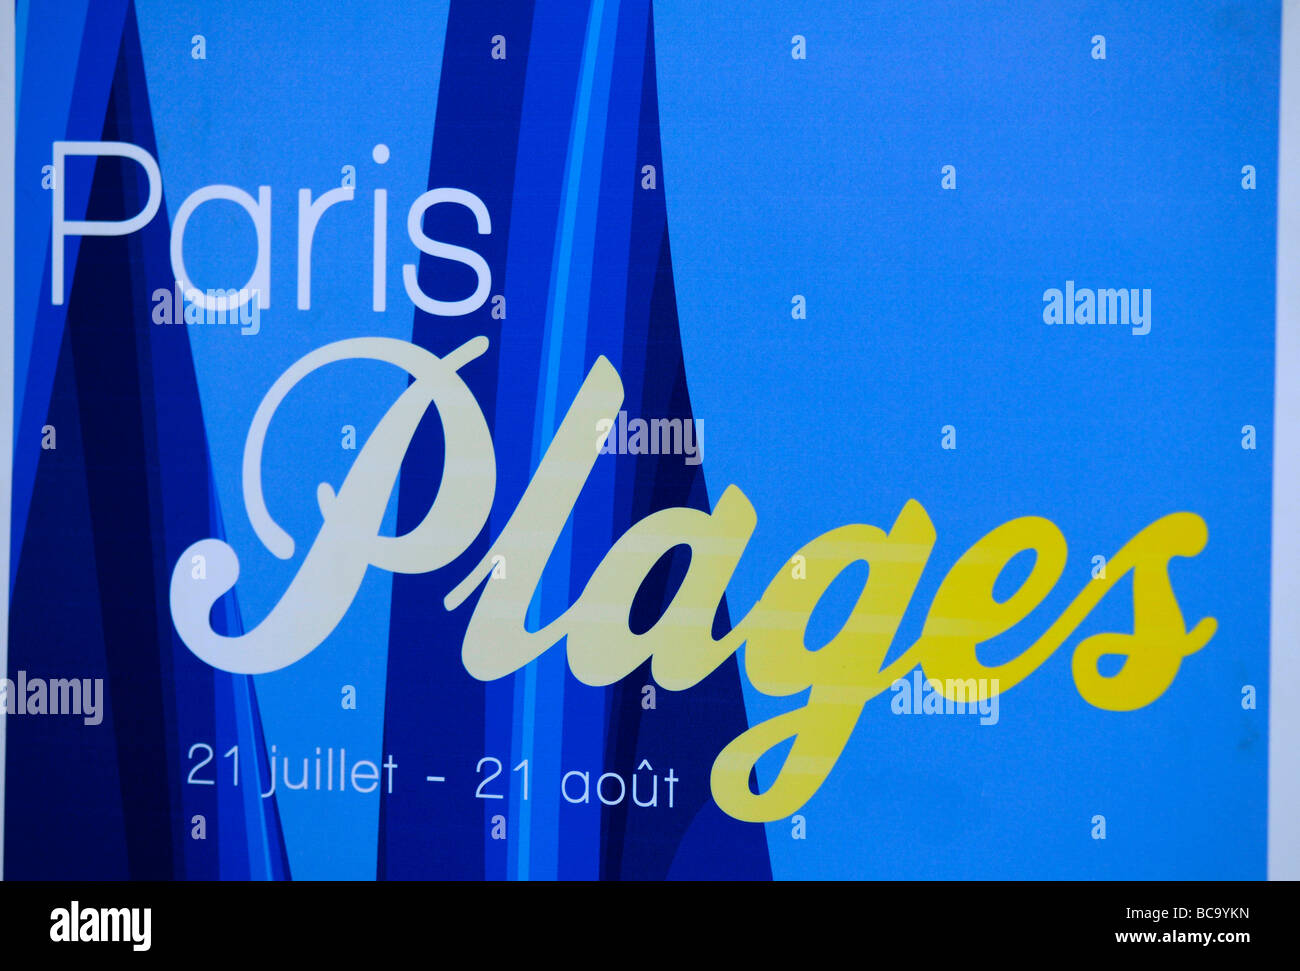 Paris plages logo, referring to the artificial beach set-up in summer in Paris, France. - Stock Image